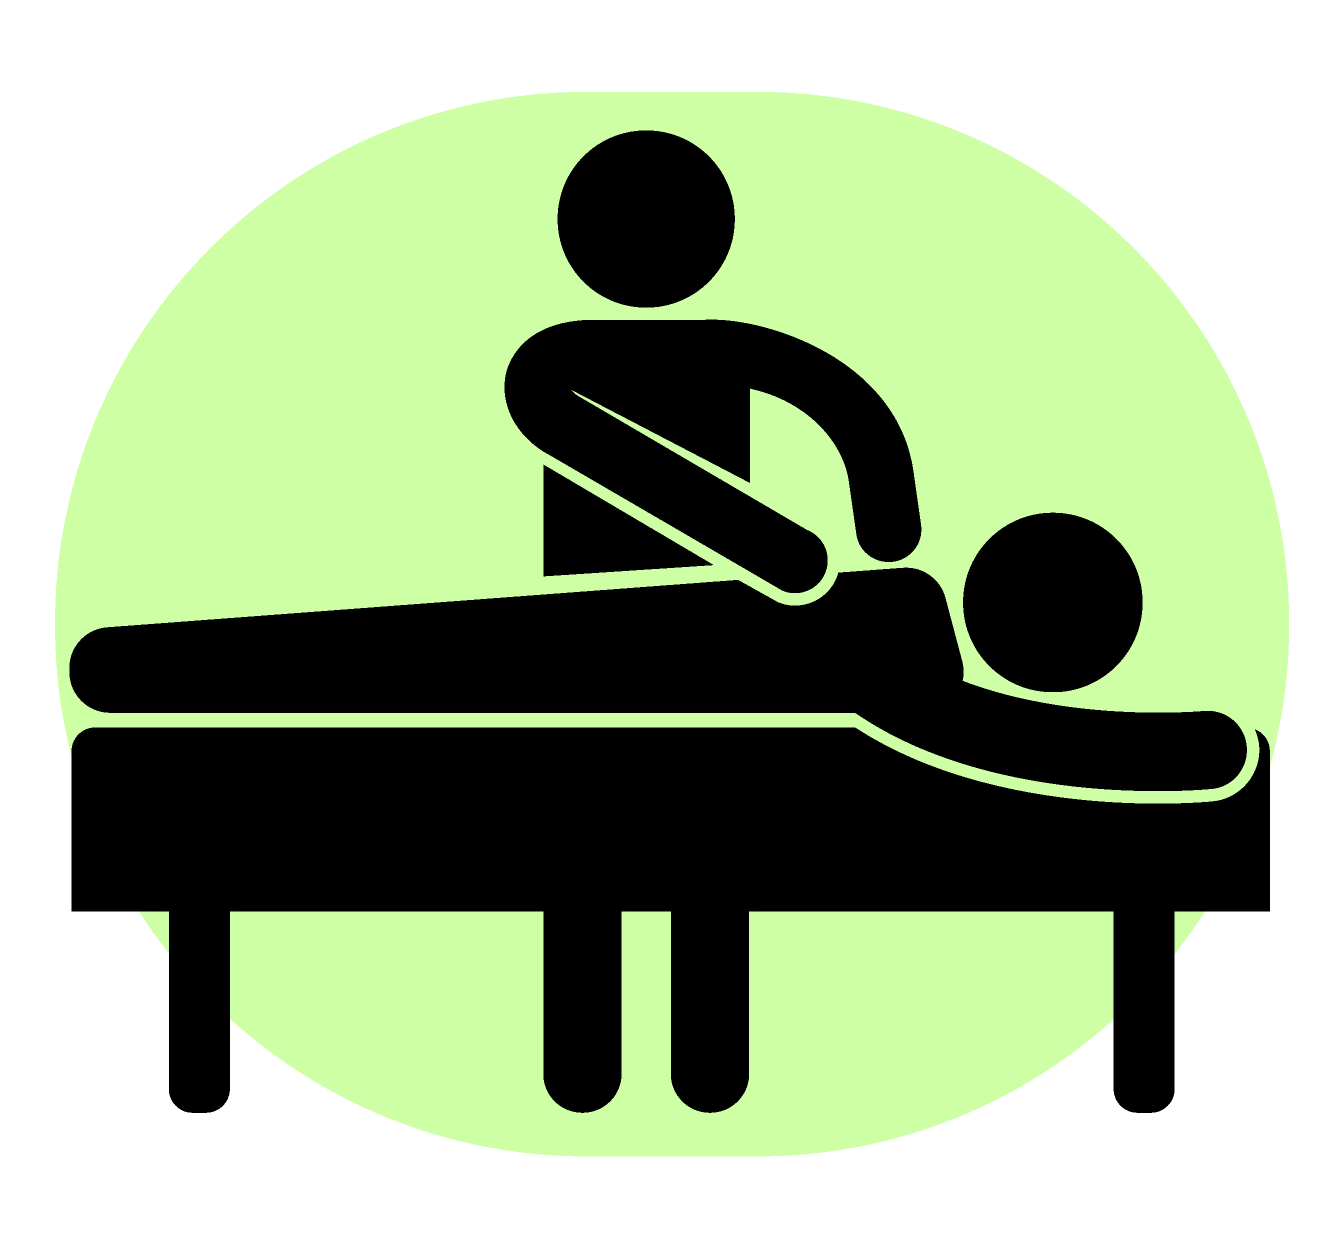 massages clipart workplace